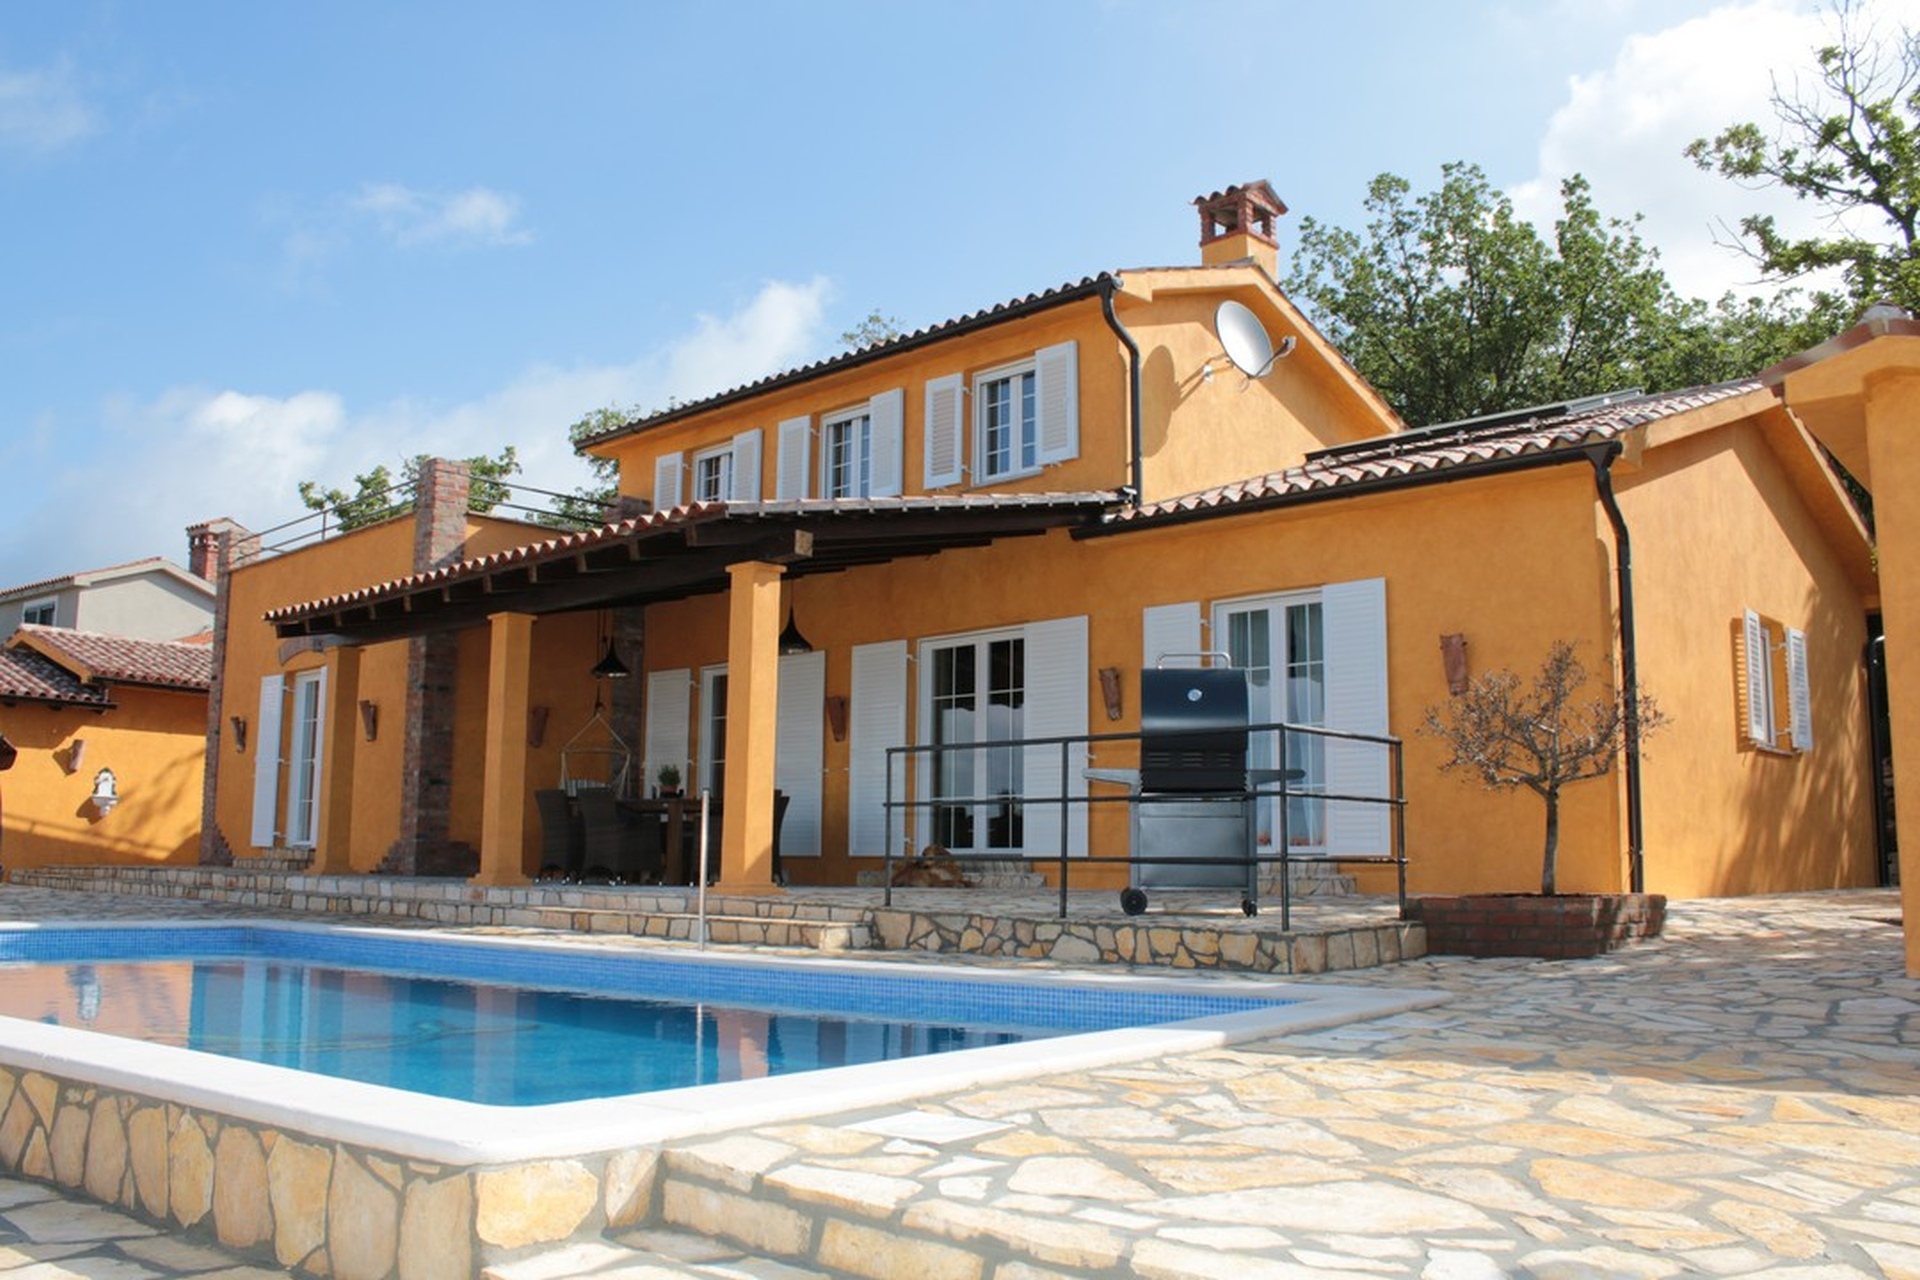 O-458 Detached Villa with pool and sea views in an idyllic, quiet location only about 3 km from the sea.